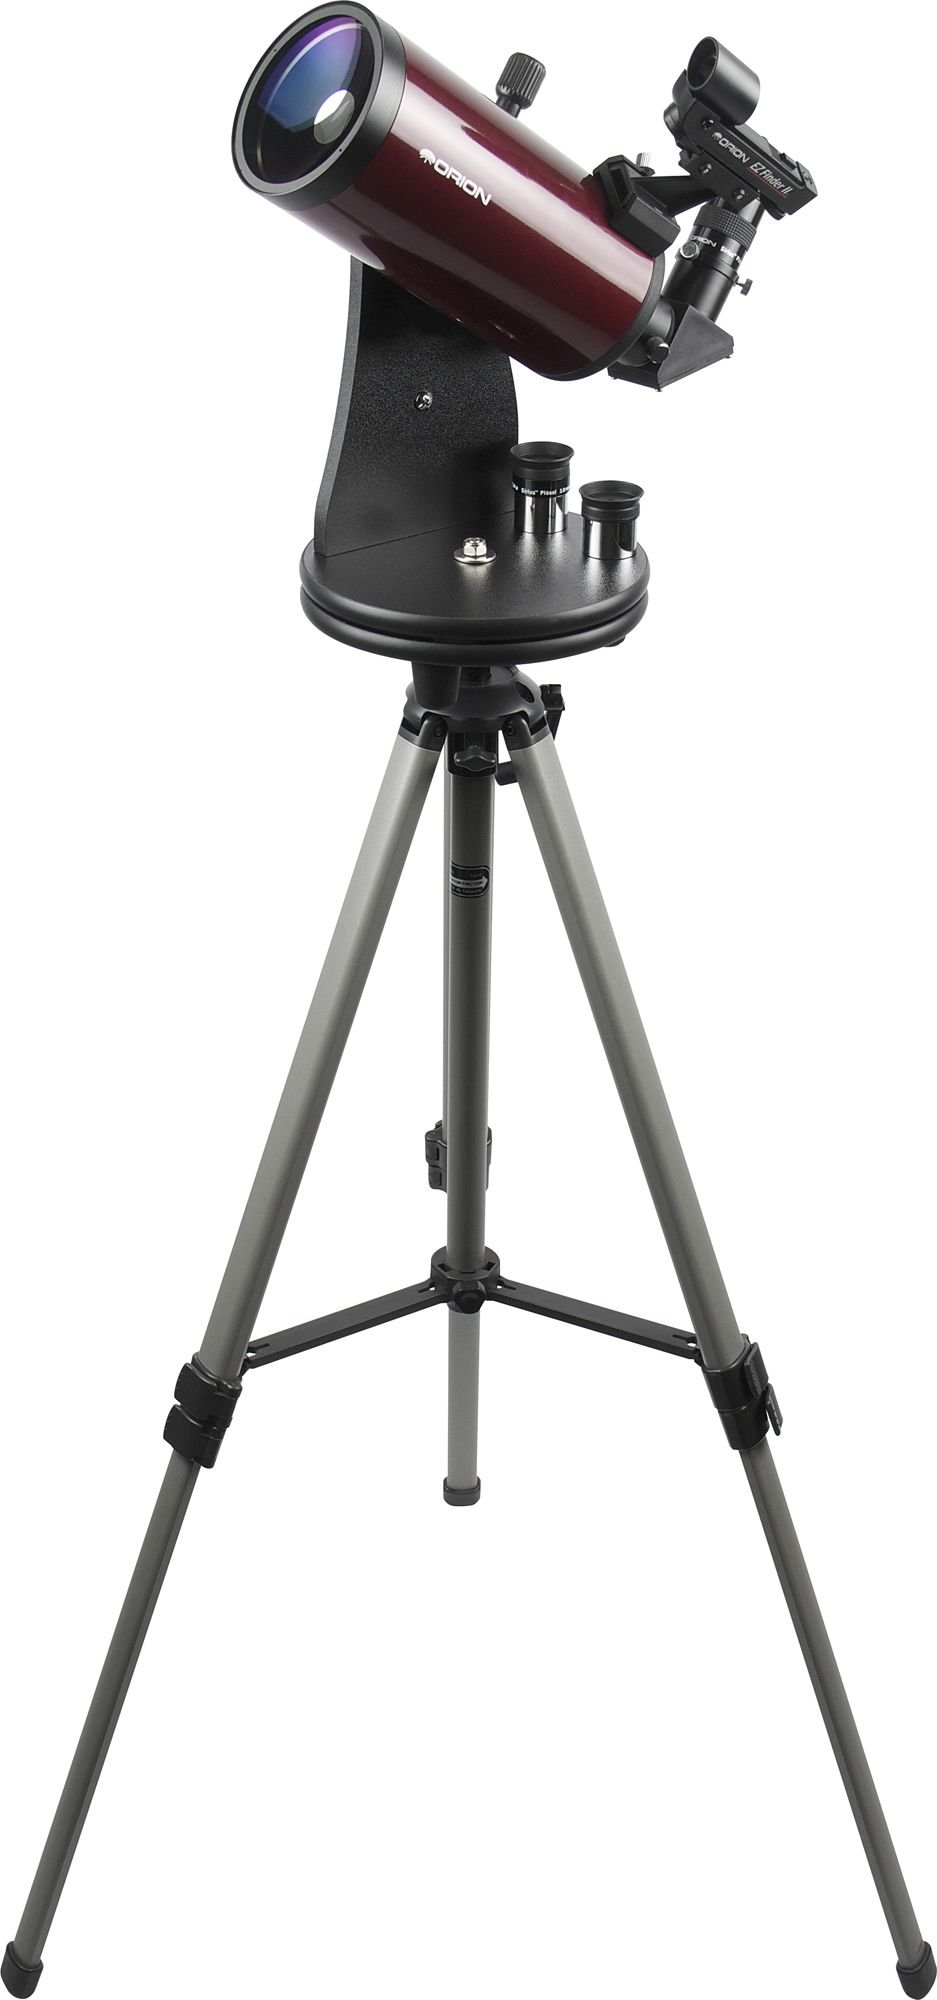 Orion StarMax 90mm Mak-Cass Telescope and Tripod Bundle by Orion